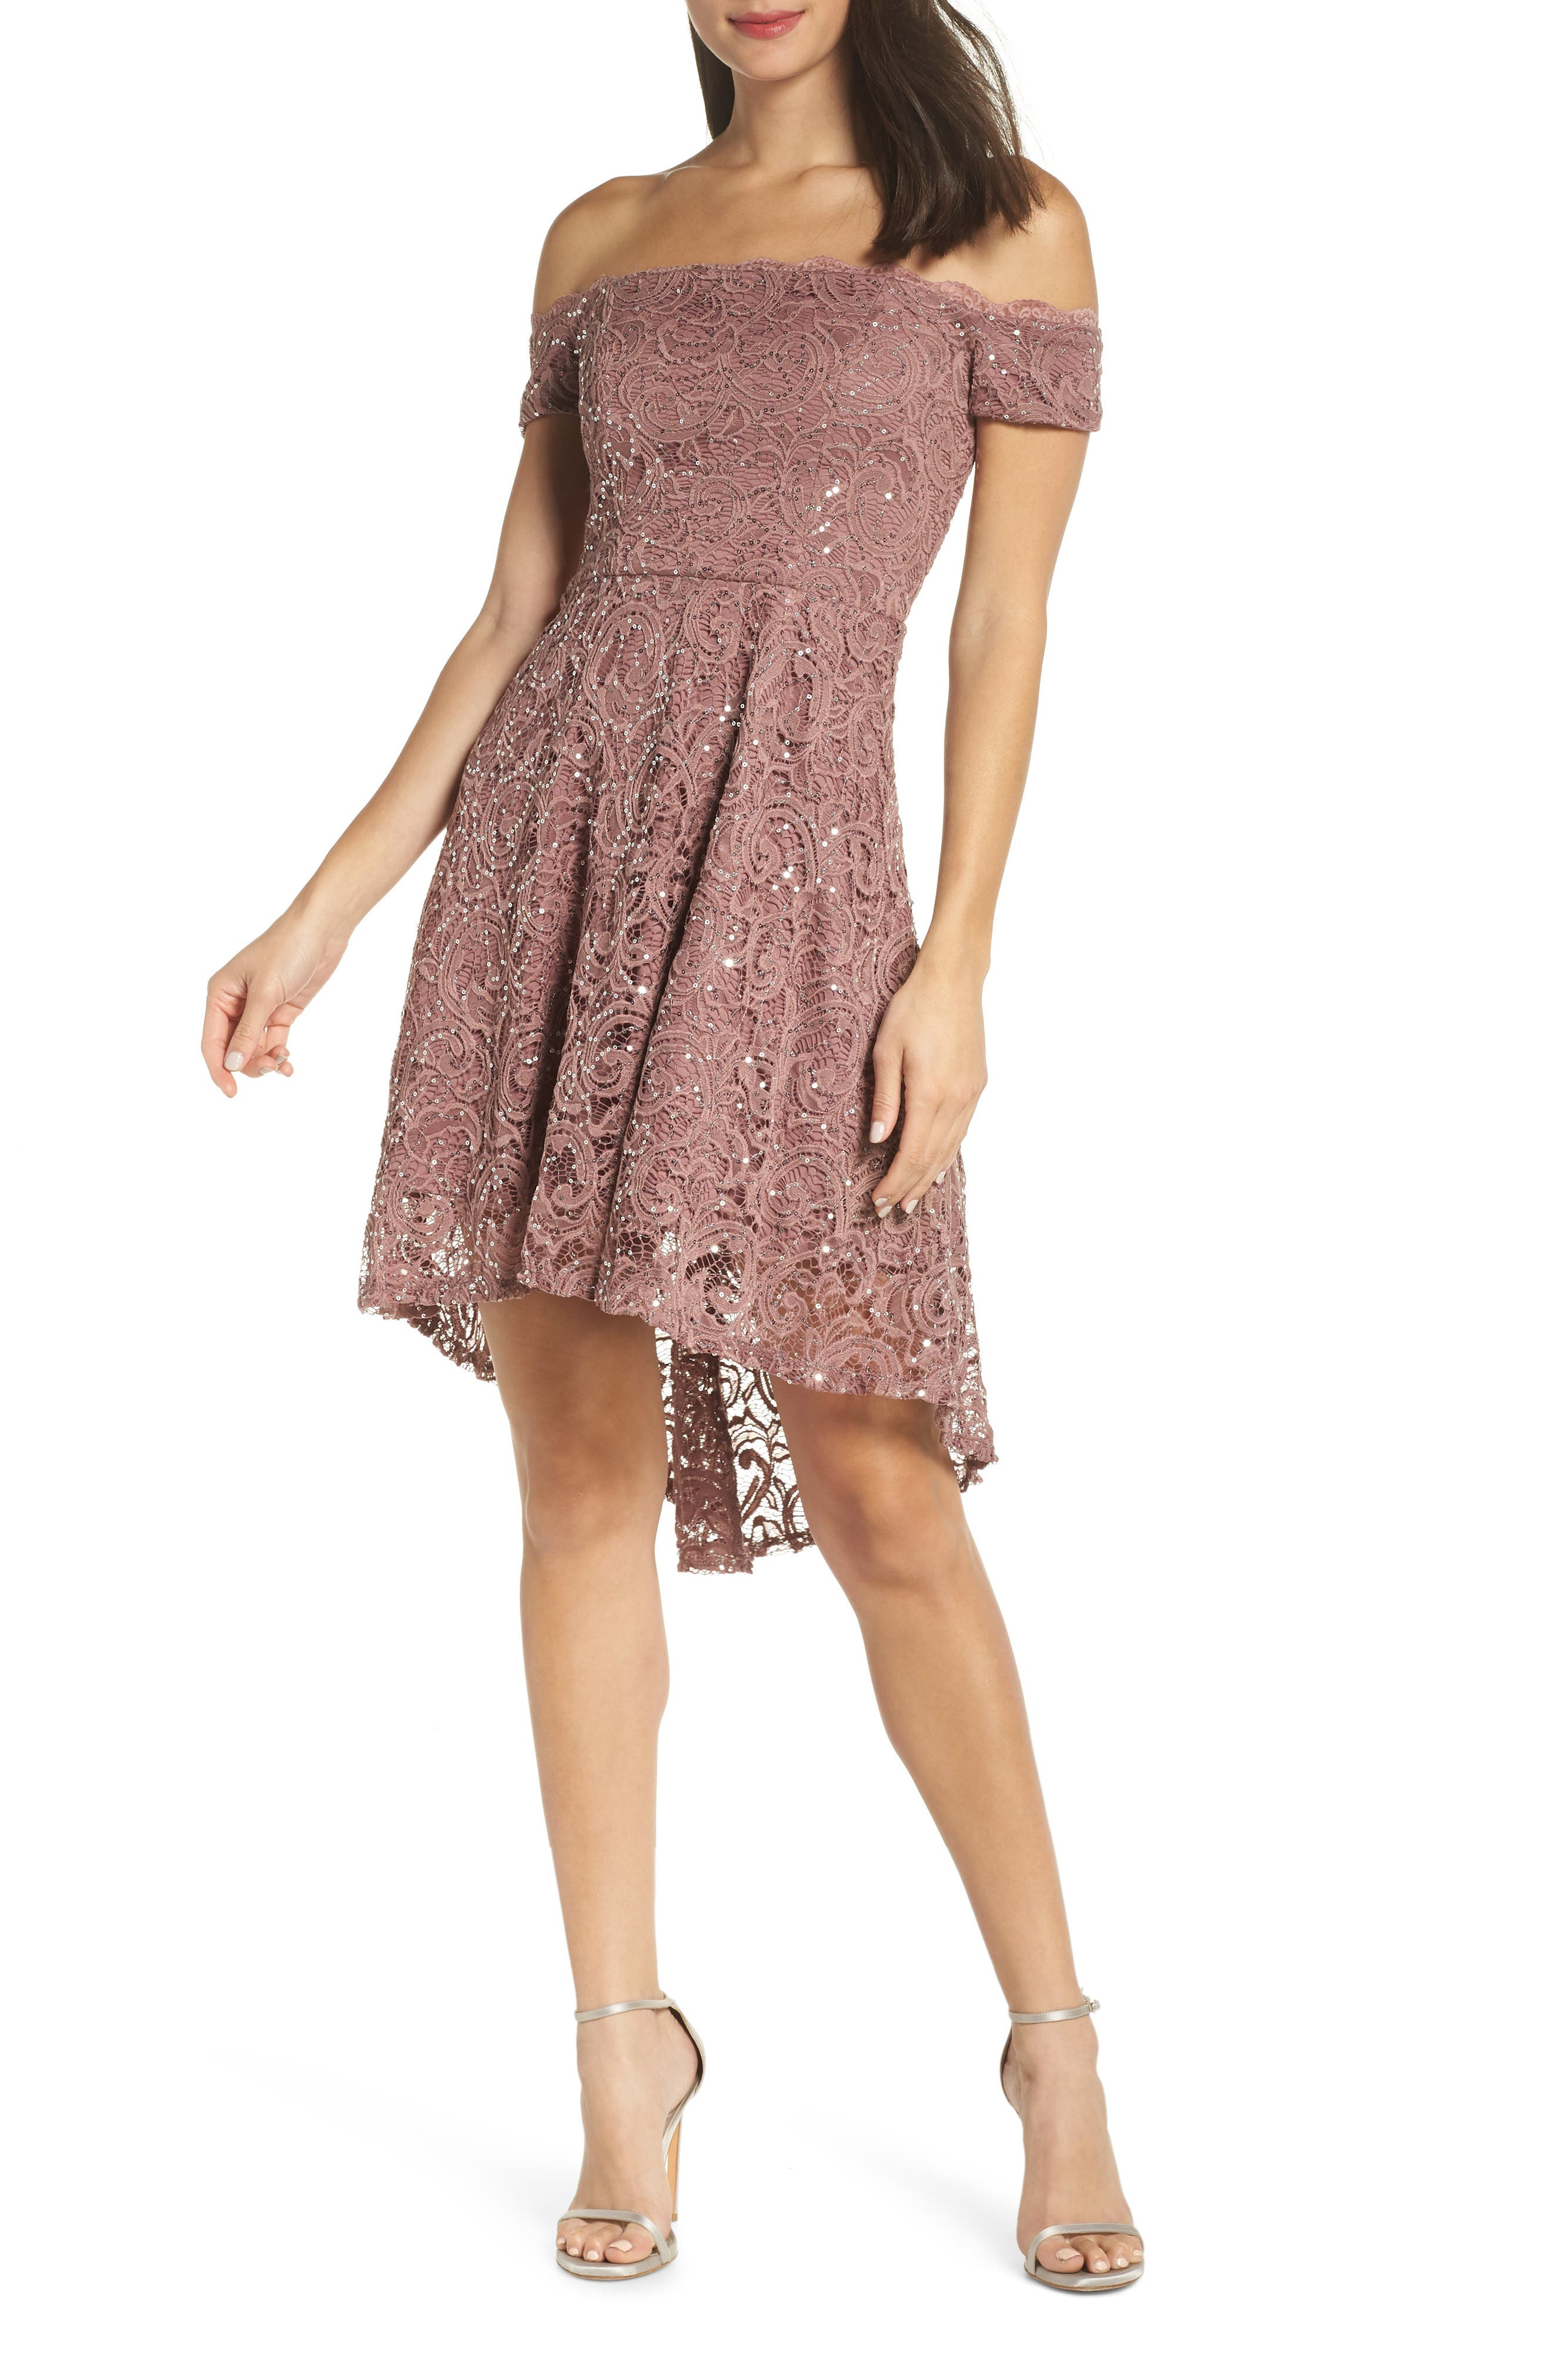 SEQUIN HEARTS Off the Shoulder Sequin Lace Cocktail Dress, Main, color, TAUPE/ SILVER